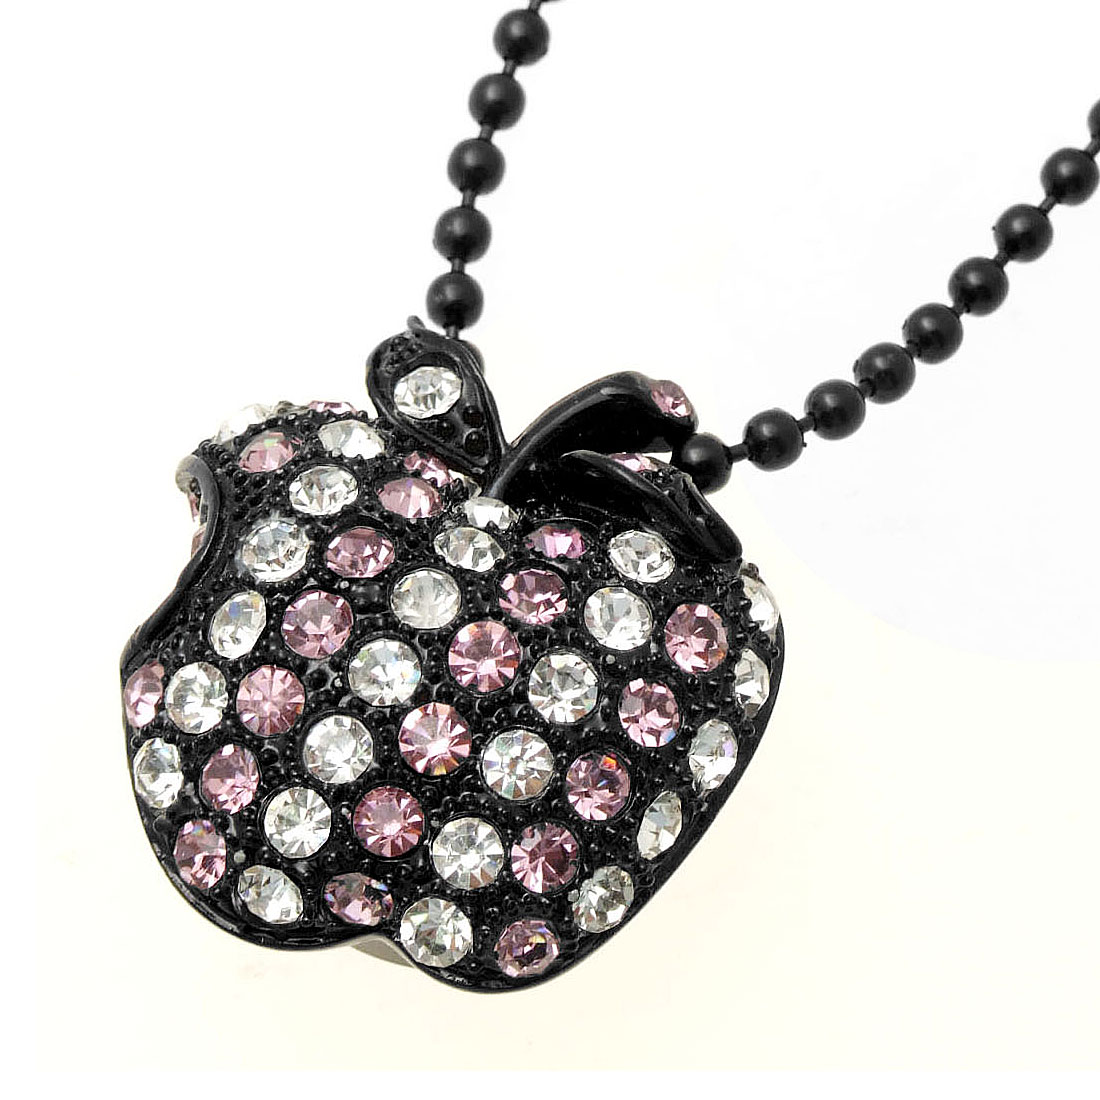 Fashion Jewelry Purple Rhinestone Apple Pendant Black Chain Necklace Girl's Watch